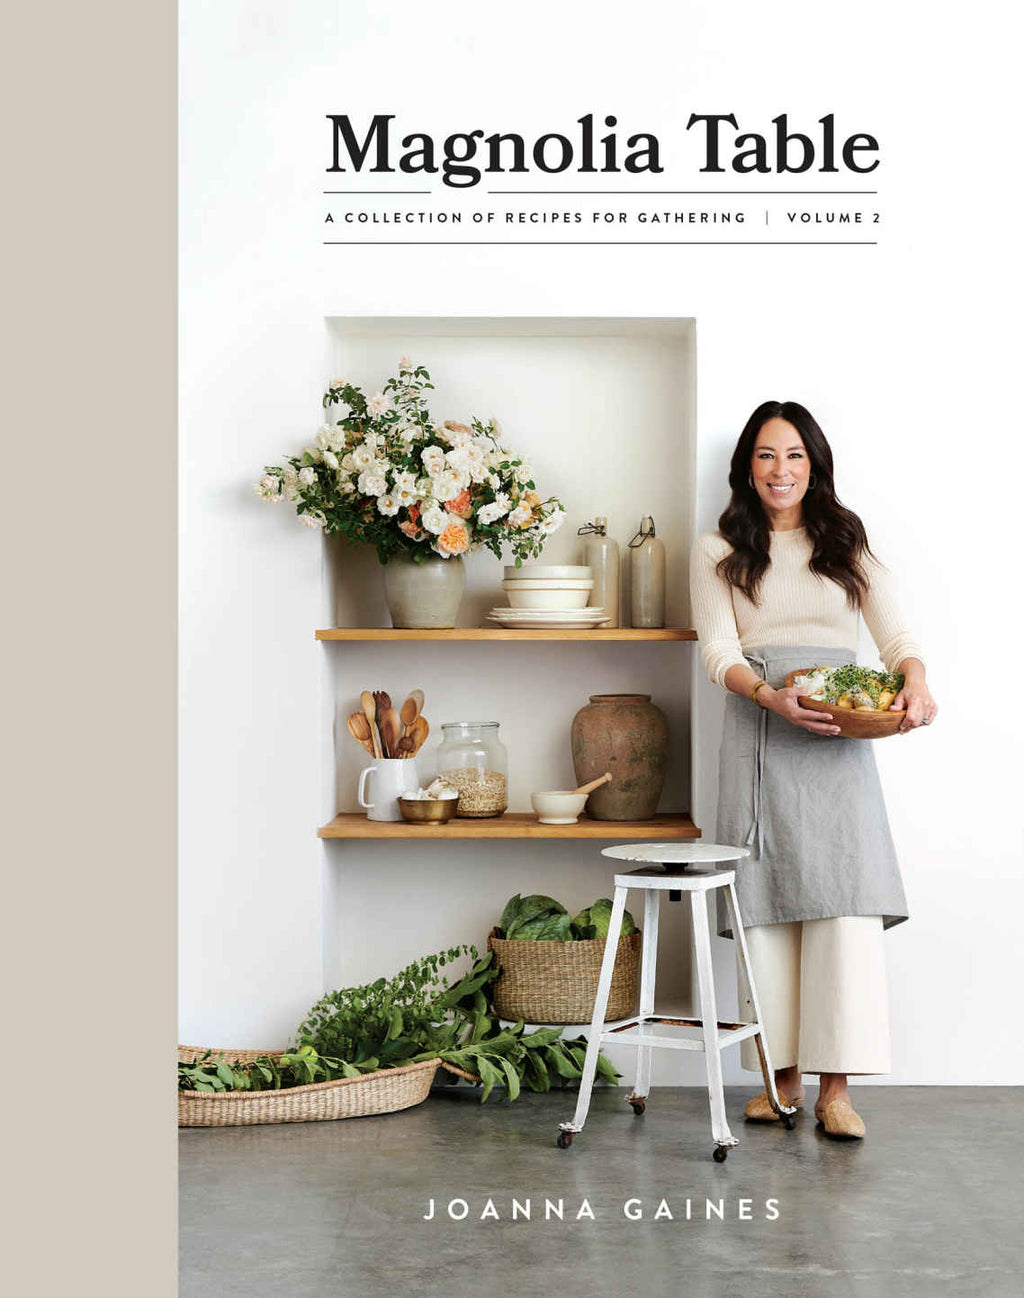 New! Magnolia Table, Volume 2: A Collection of Recipes for Gathering